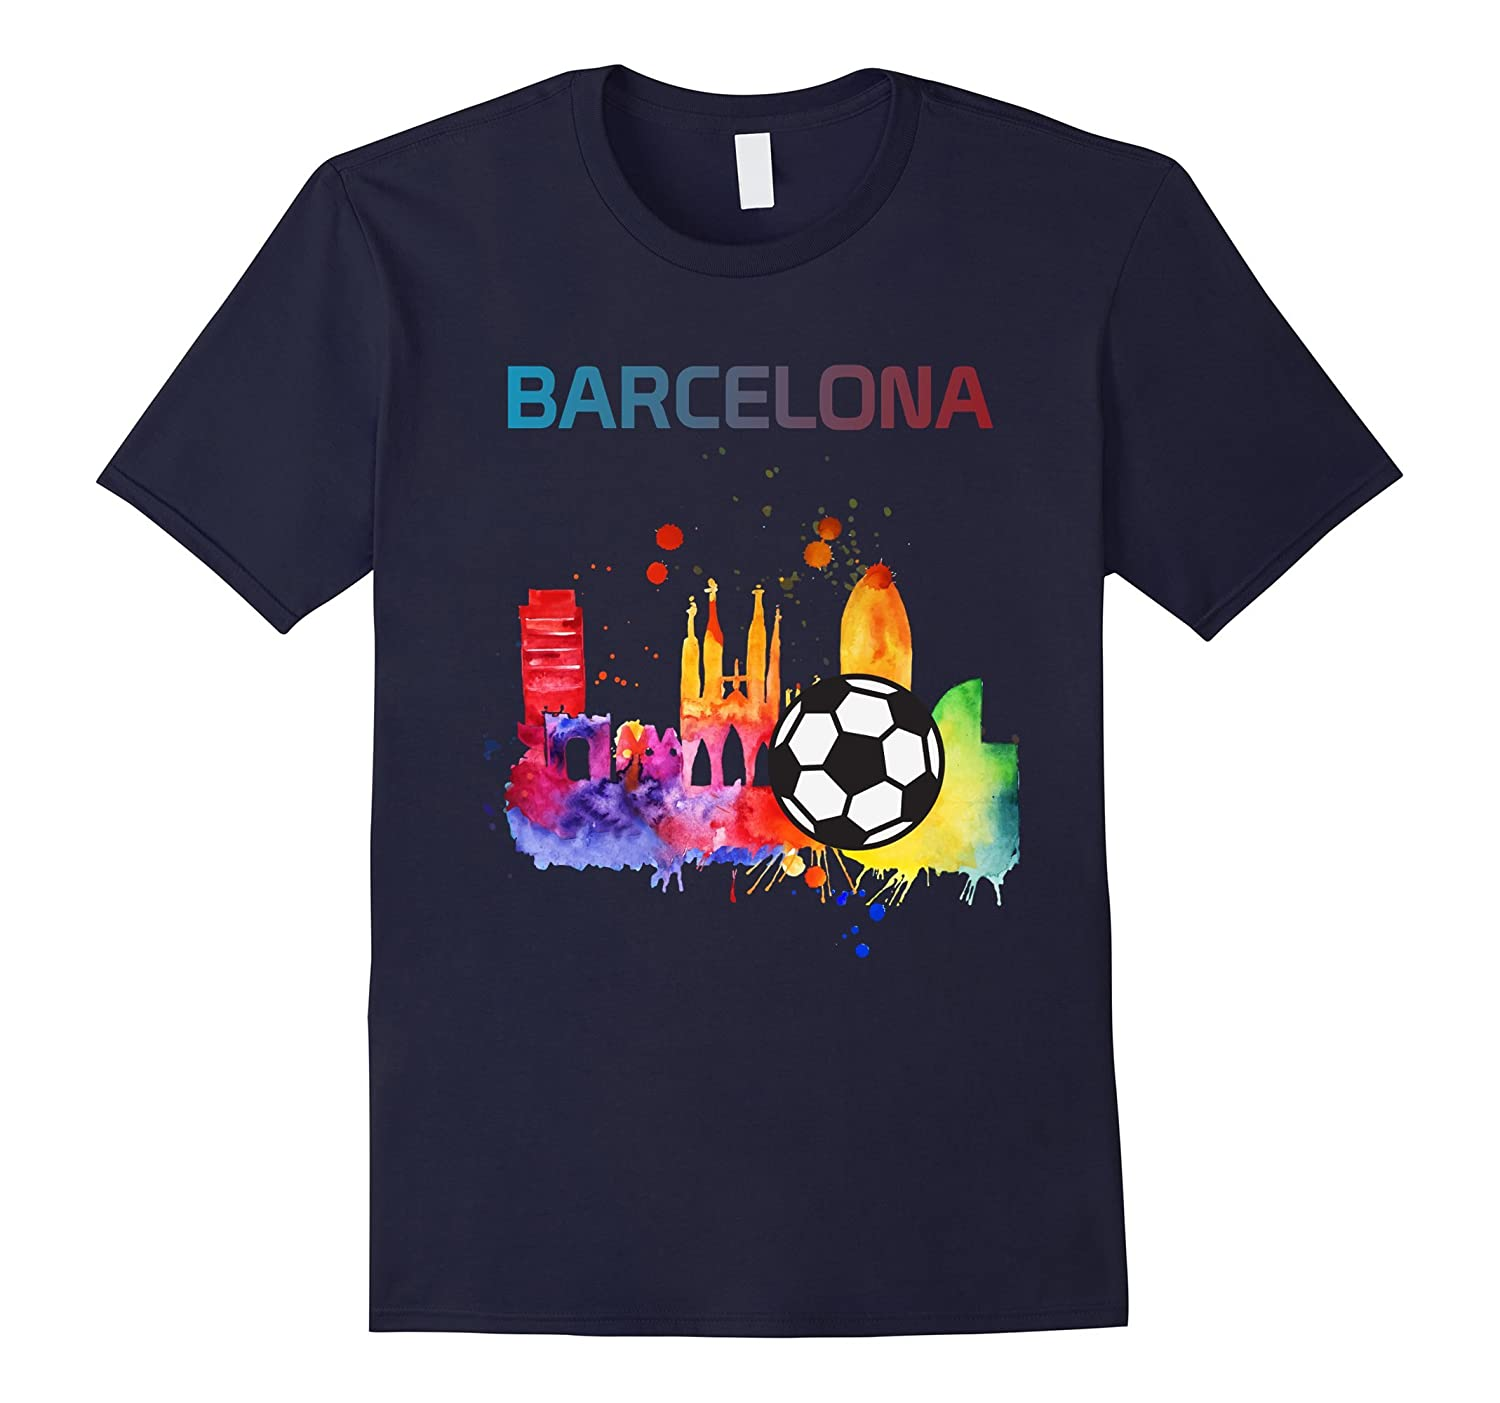 Barcelona Spain t shirt soccer ball for men women boys girls-PL